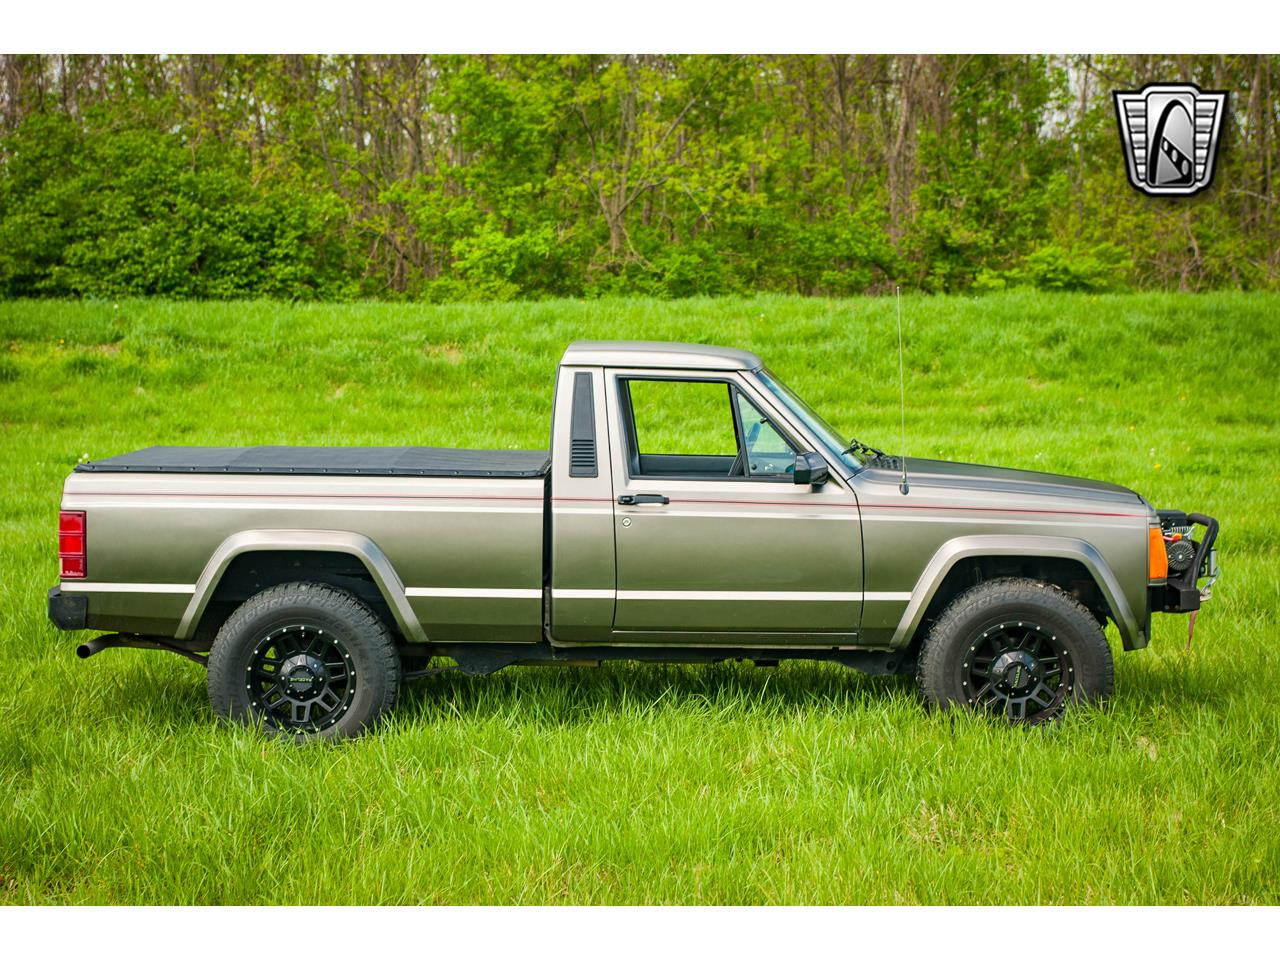 Large Picture of 1990 Comanche located in O'Fallon Illinois Offered by Gateway Classic Cars - St. Louis - QB8P